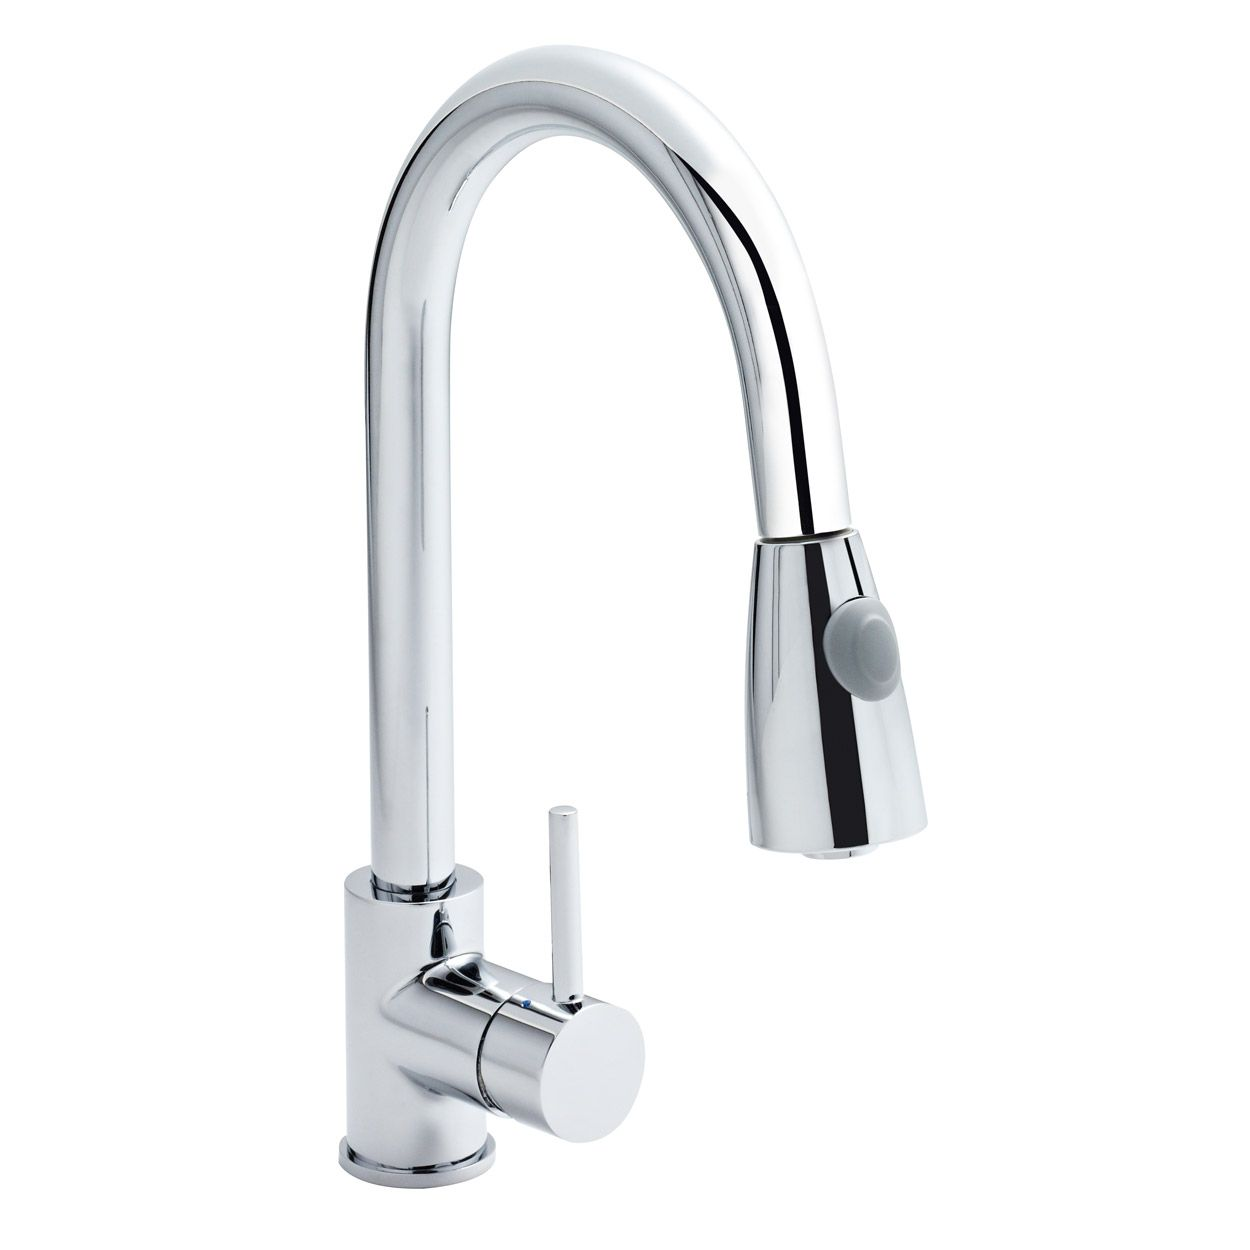 Ultra Kitchen Sink Mixer Tap Pull-Out Spray Single Handle - Chrome ...